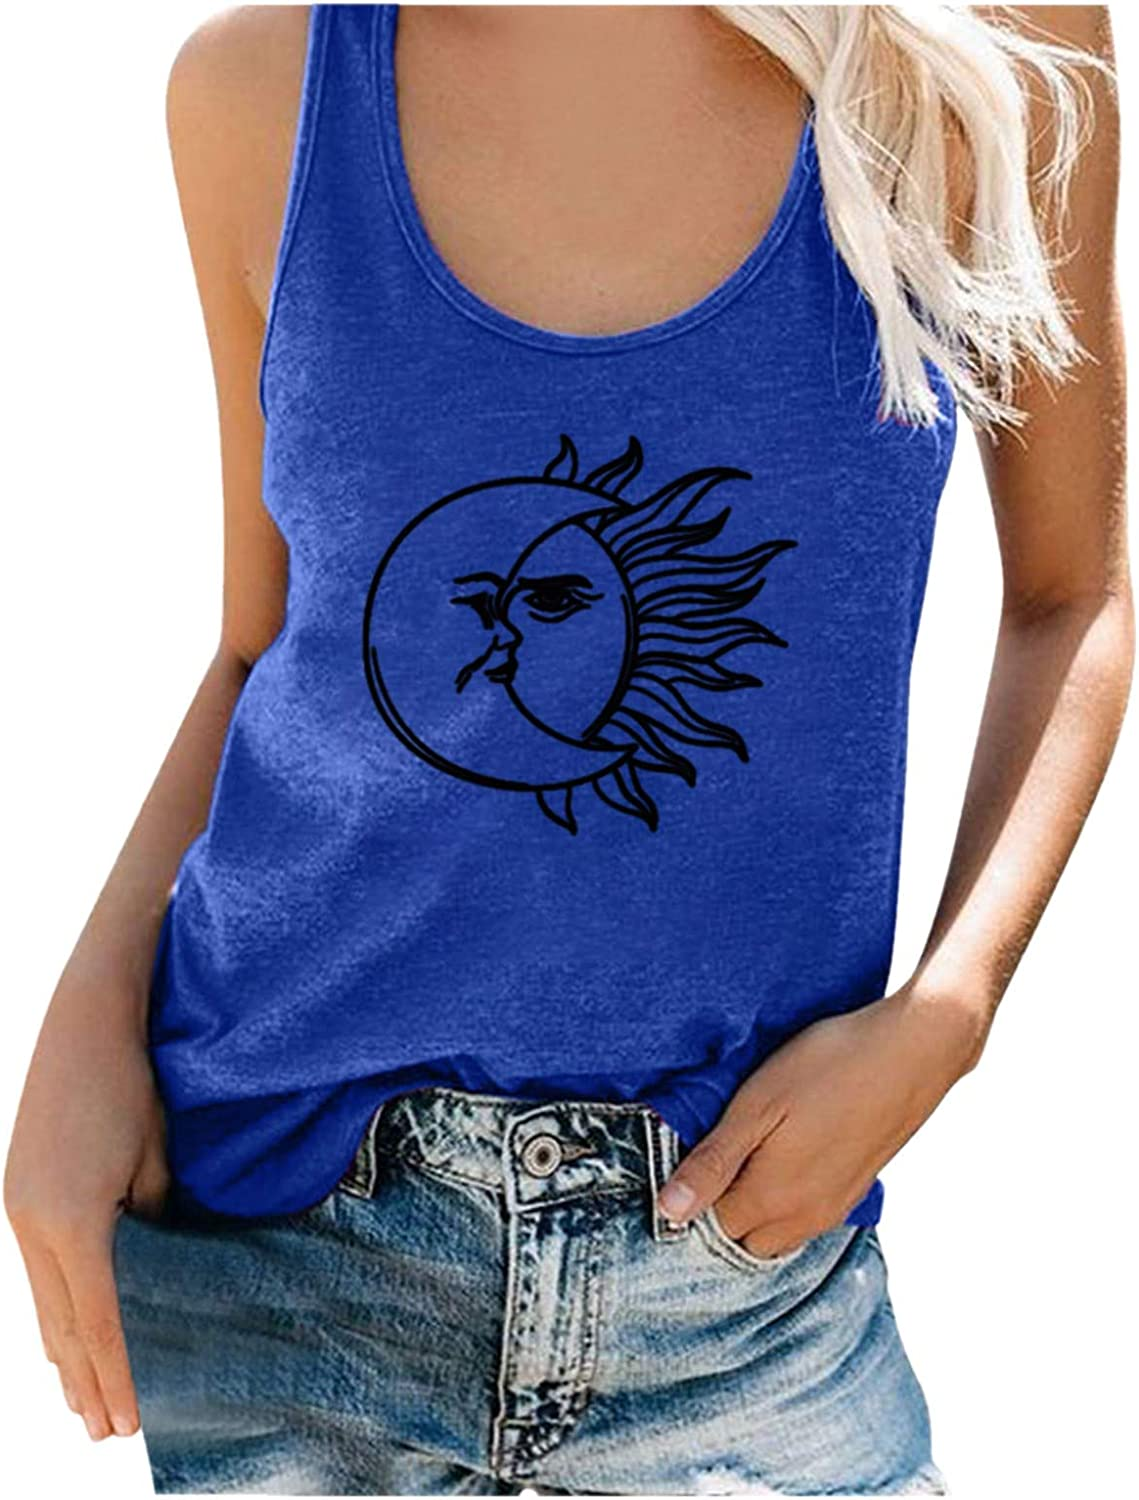 AODONG Tank Top for Womens,Women Sunflower Print Sleeveless Bandages Vest Top Strappy Tank Tops